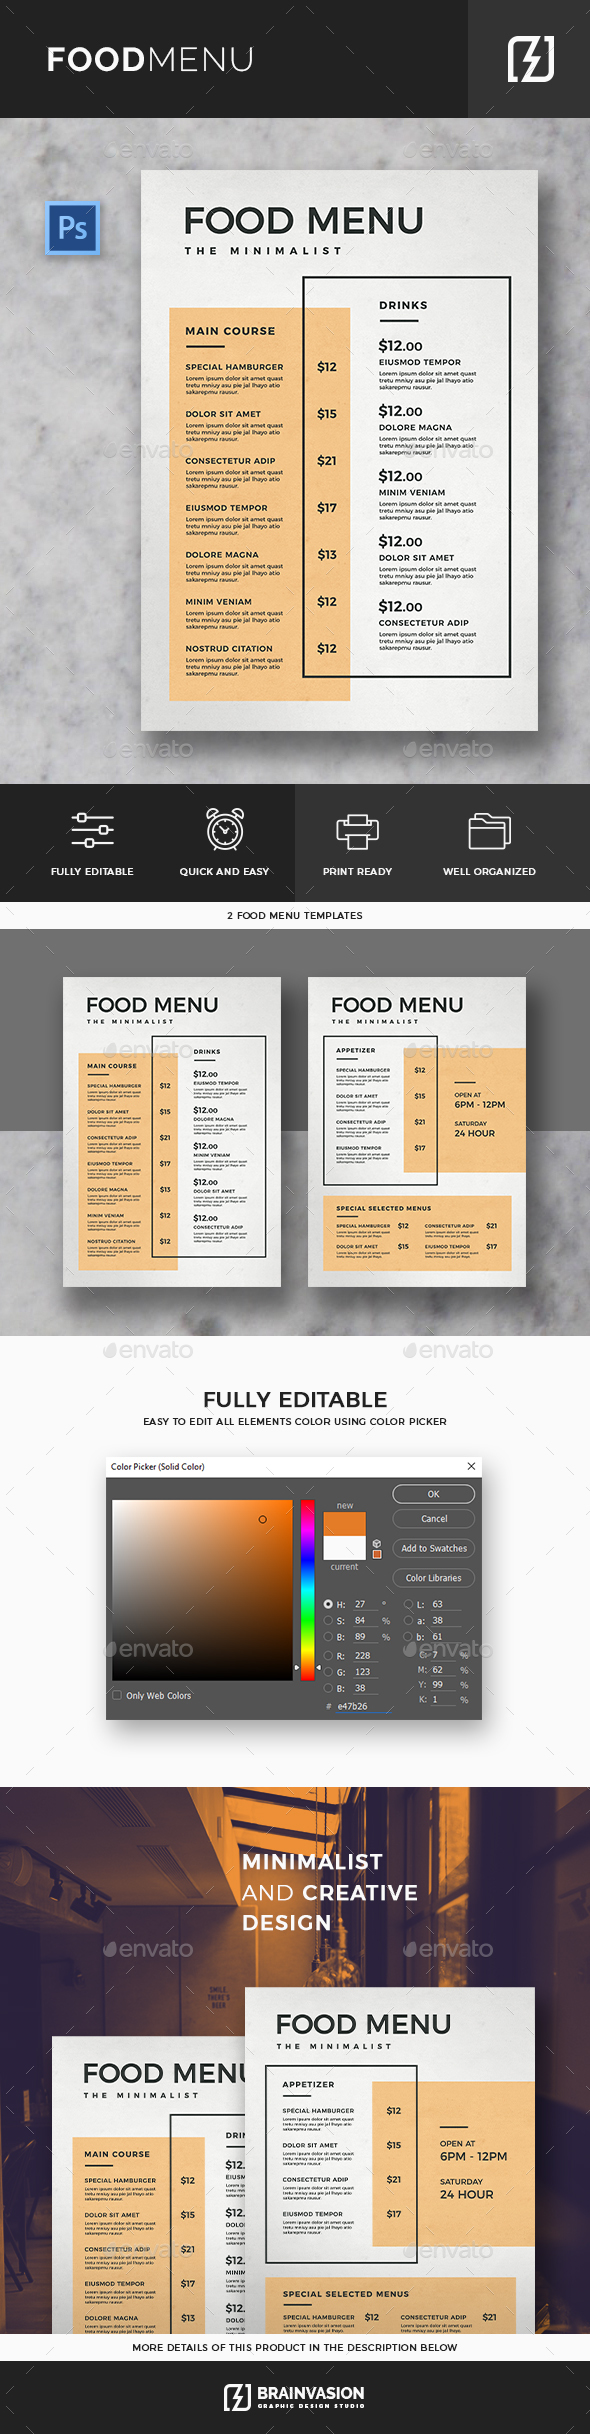 Minimal Food Menu Template - Food Menus Print Templates